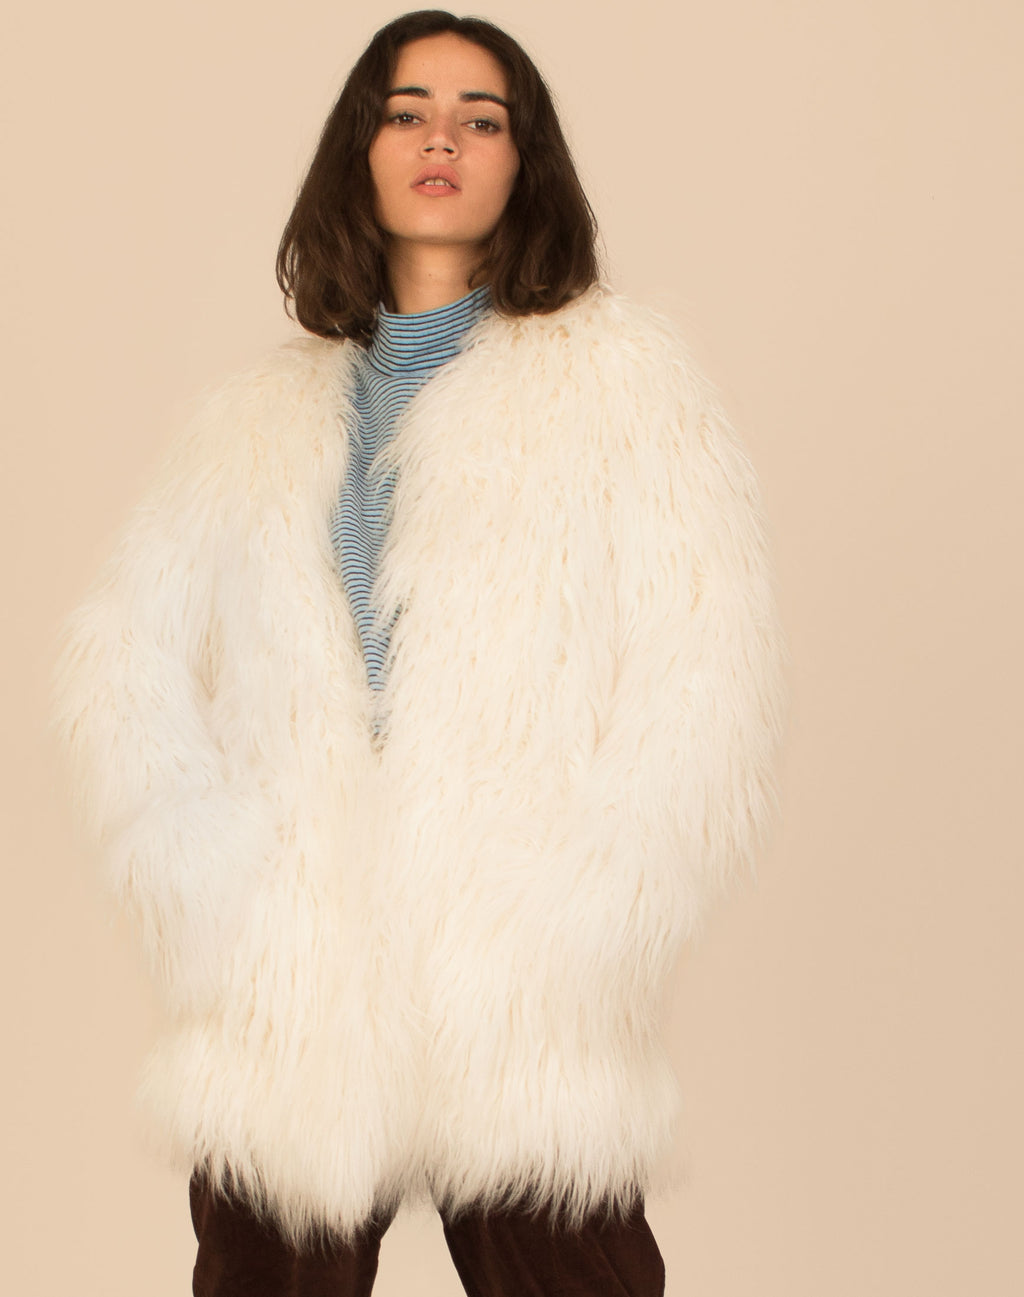 WHITE SHAGGY FUR COAT